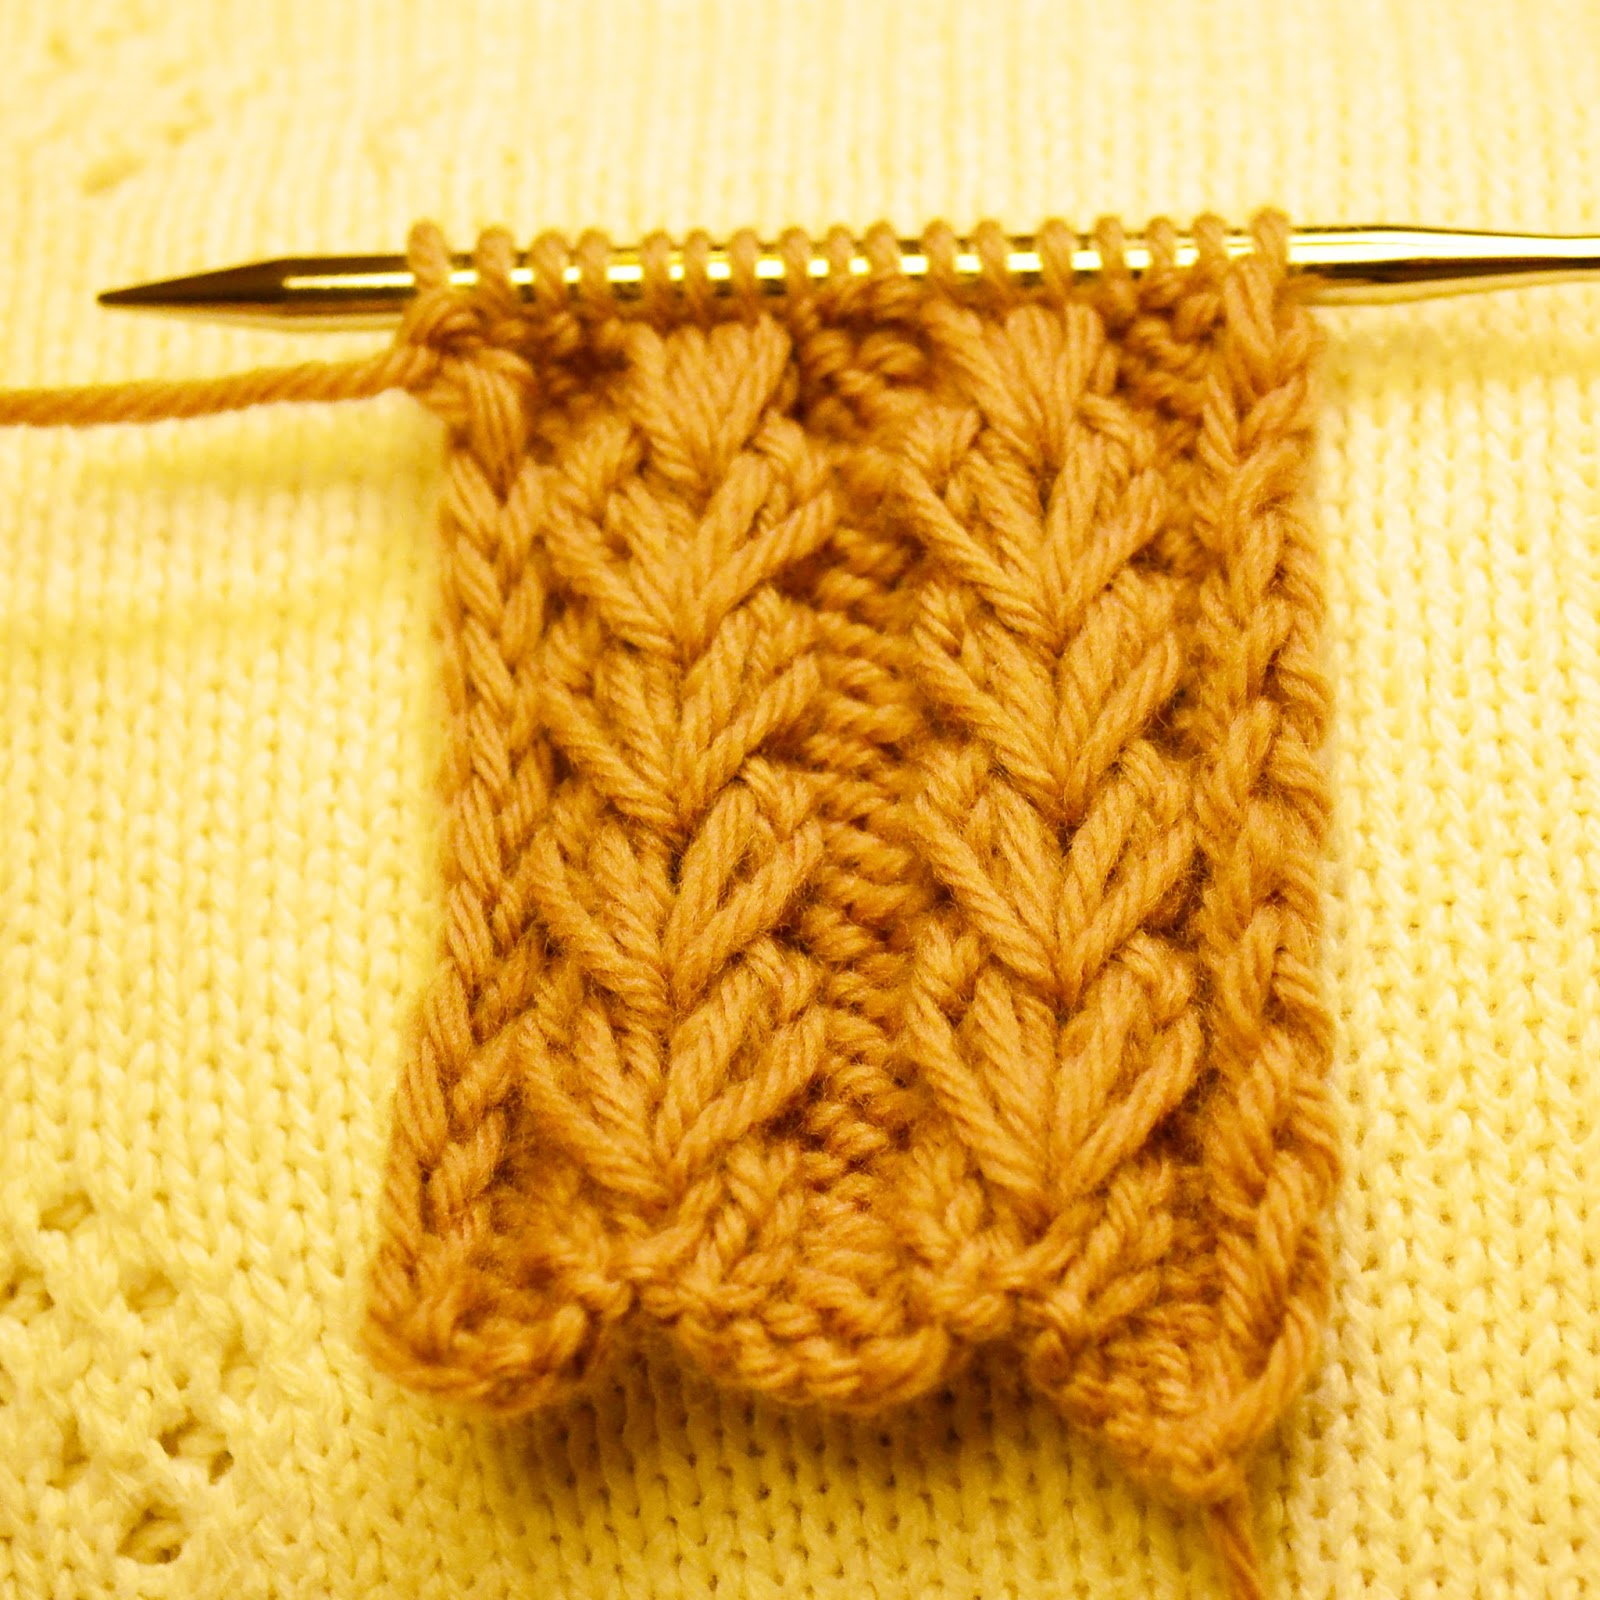 Knitting Rib Stitching : Organized pack rat wheat ear rib stitch knitting